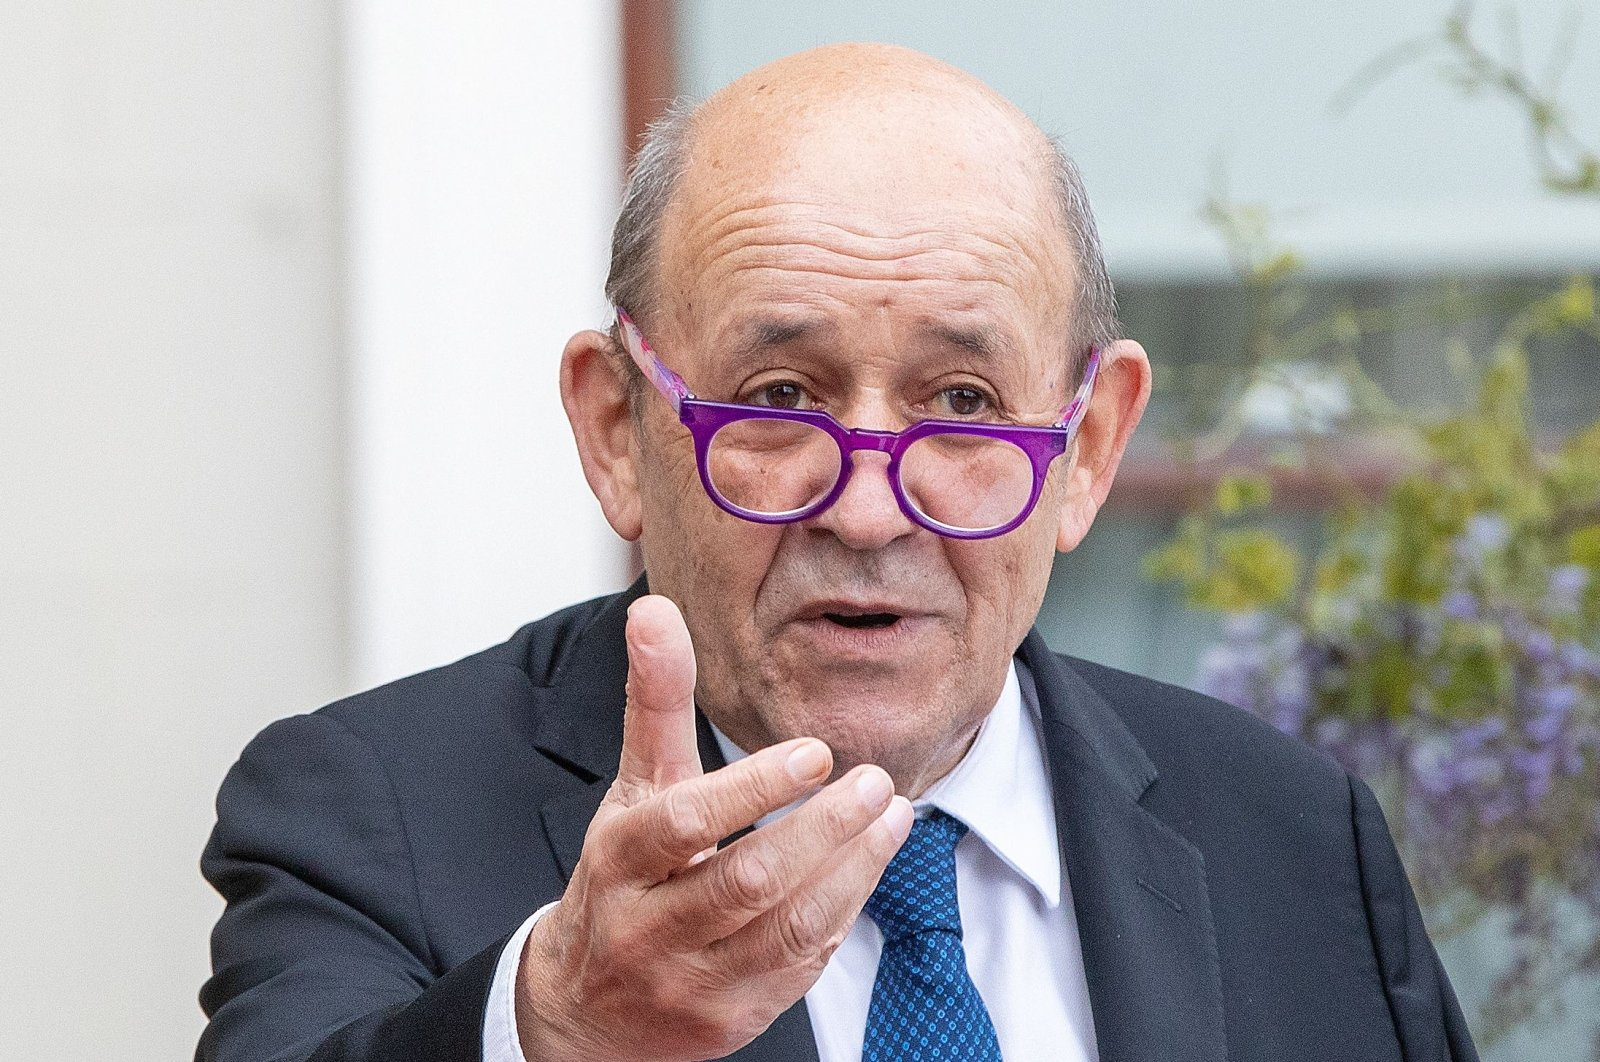 French Minister for Foreign Affairs Jean-Yves Le Drian speaks during a joint press conference with Irish Minister for Foreign Affairs Simon Coveney, at Farmleigh House and Estate in Dublin, Ireland, May 20, 2021. (AFP Photo)